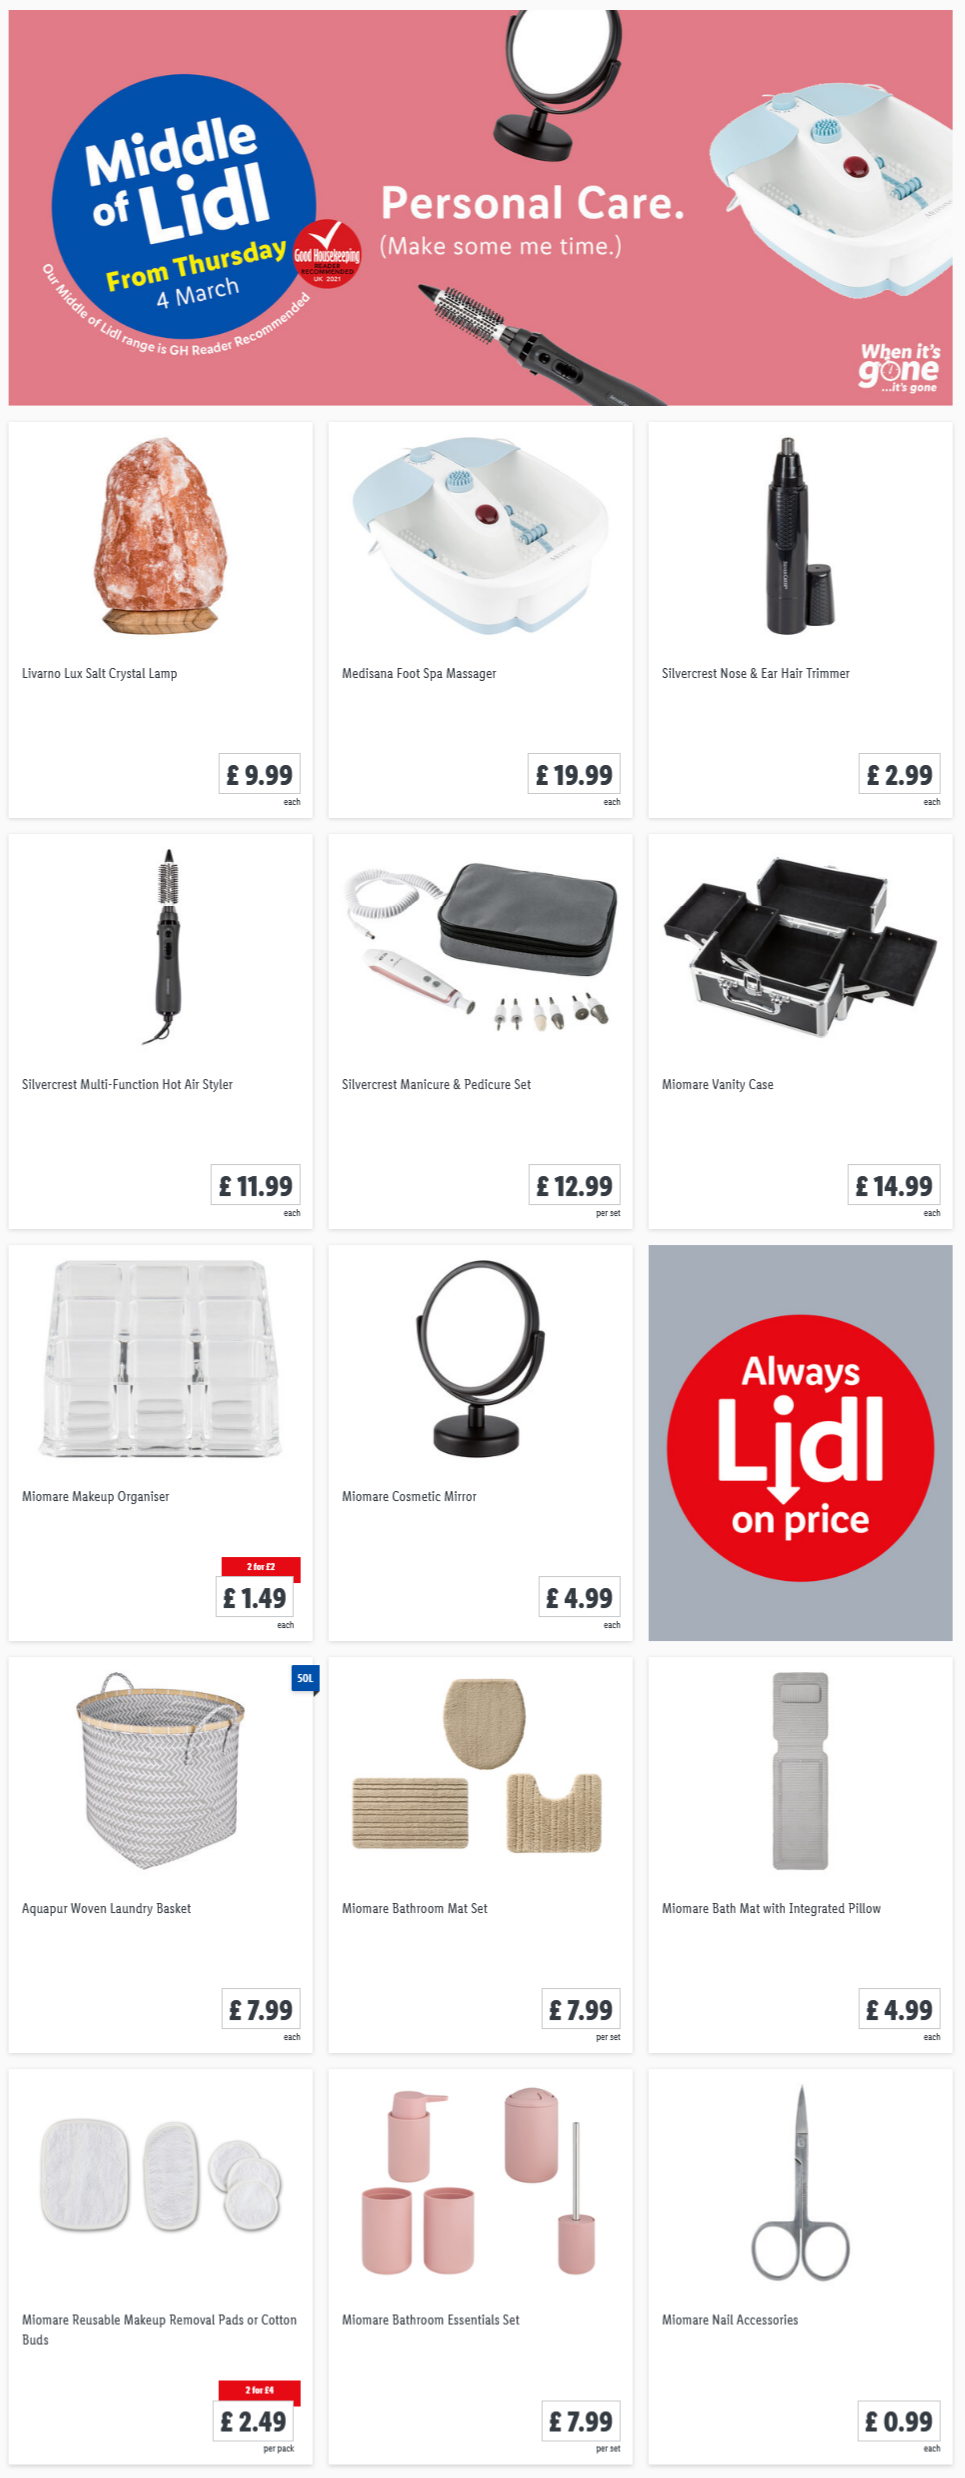 LIDL Personal Care Offers From Thursday 4/3/2021